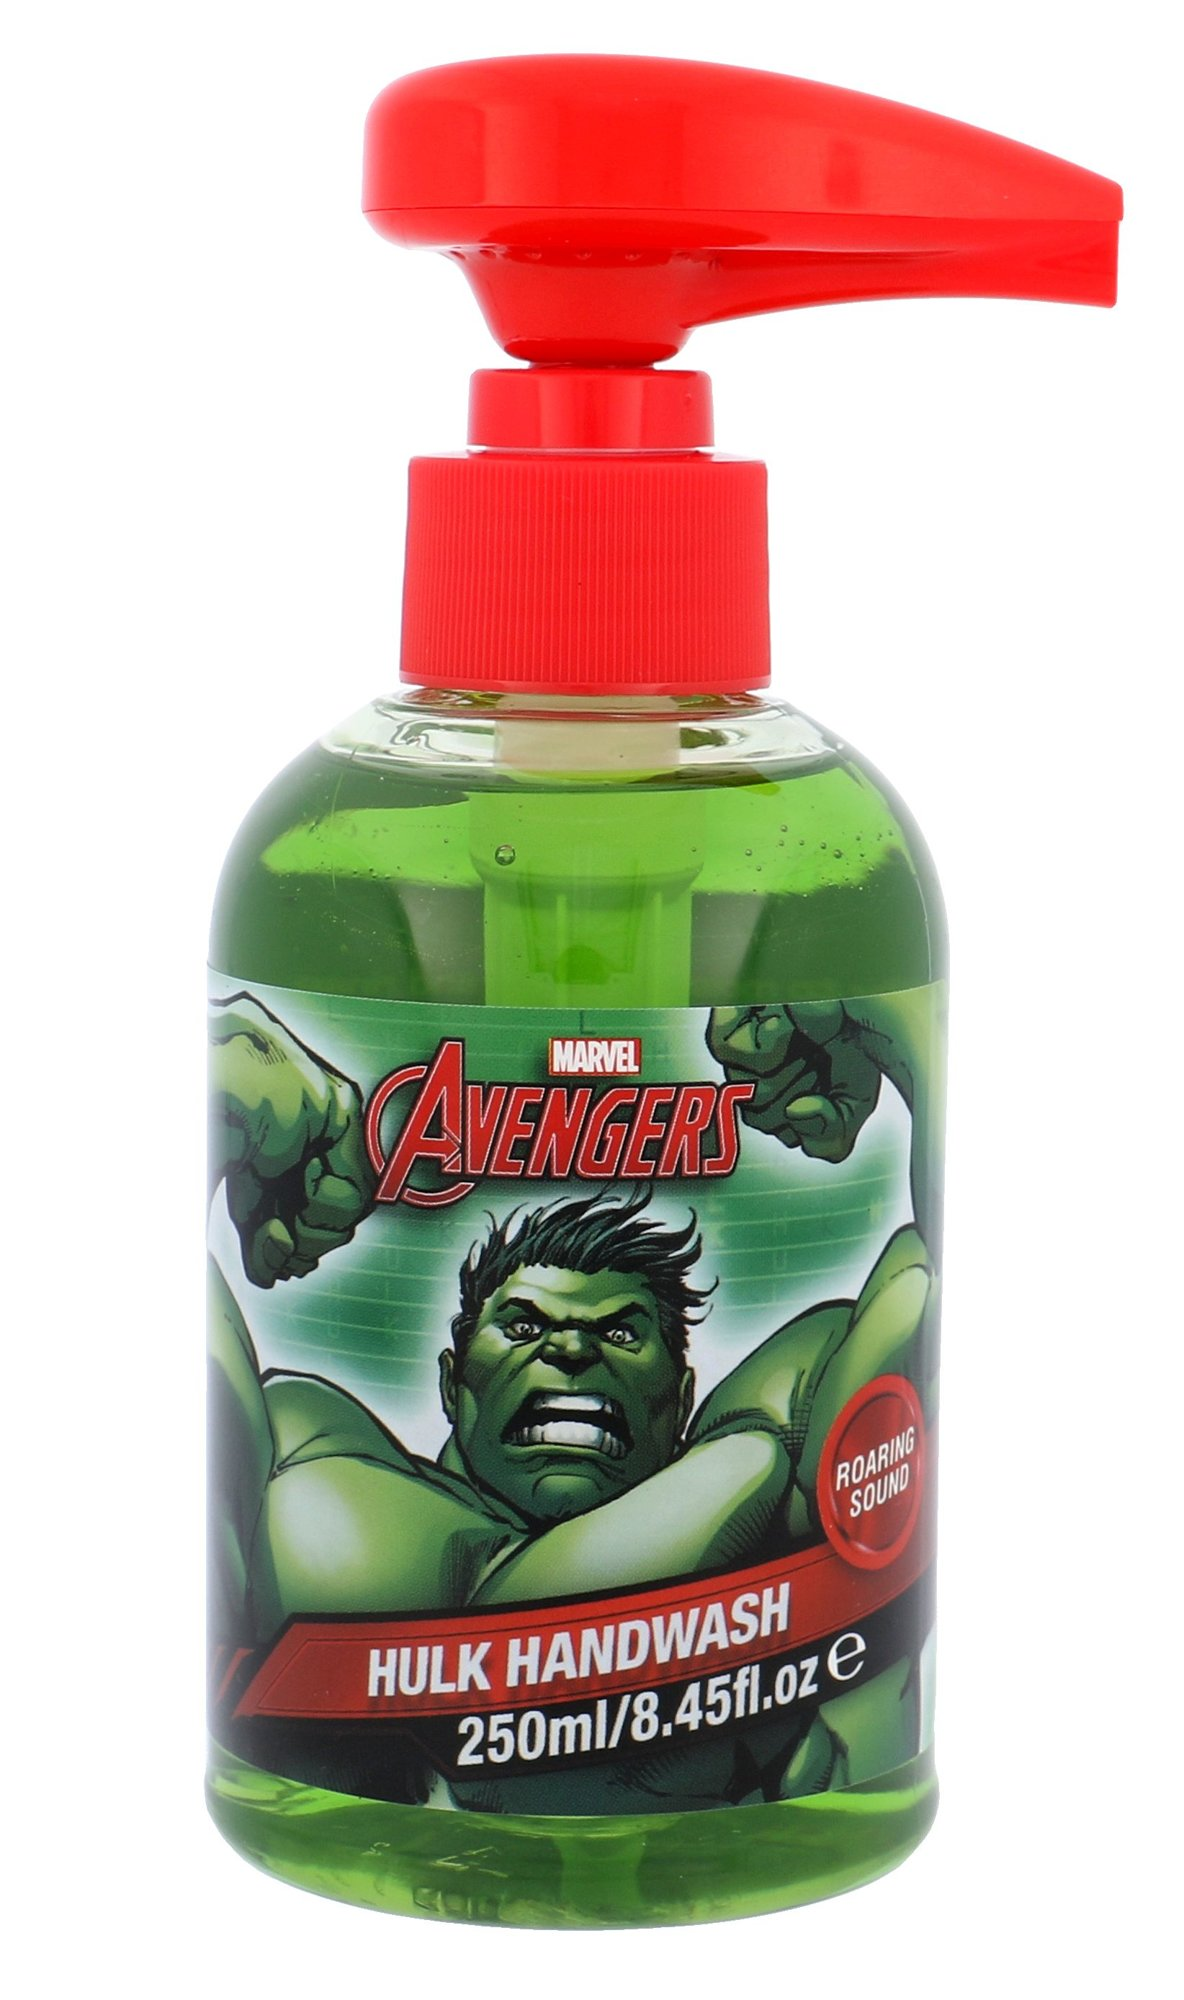 Marvel Avengers Hulk Hand Wash With Roaring Sound Cosmetic 250ml